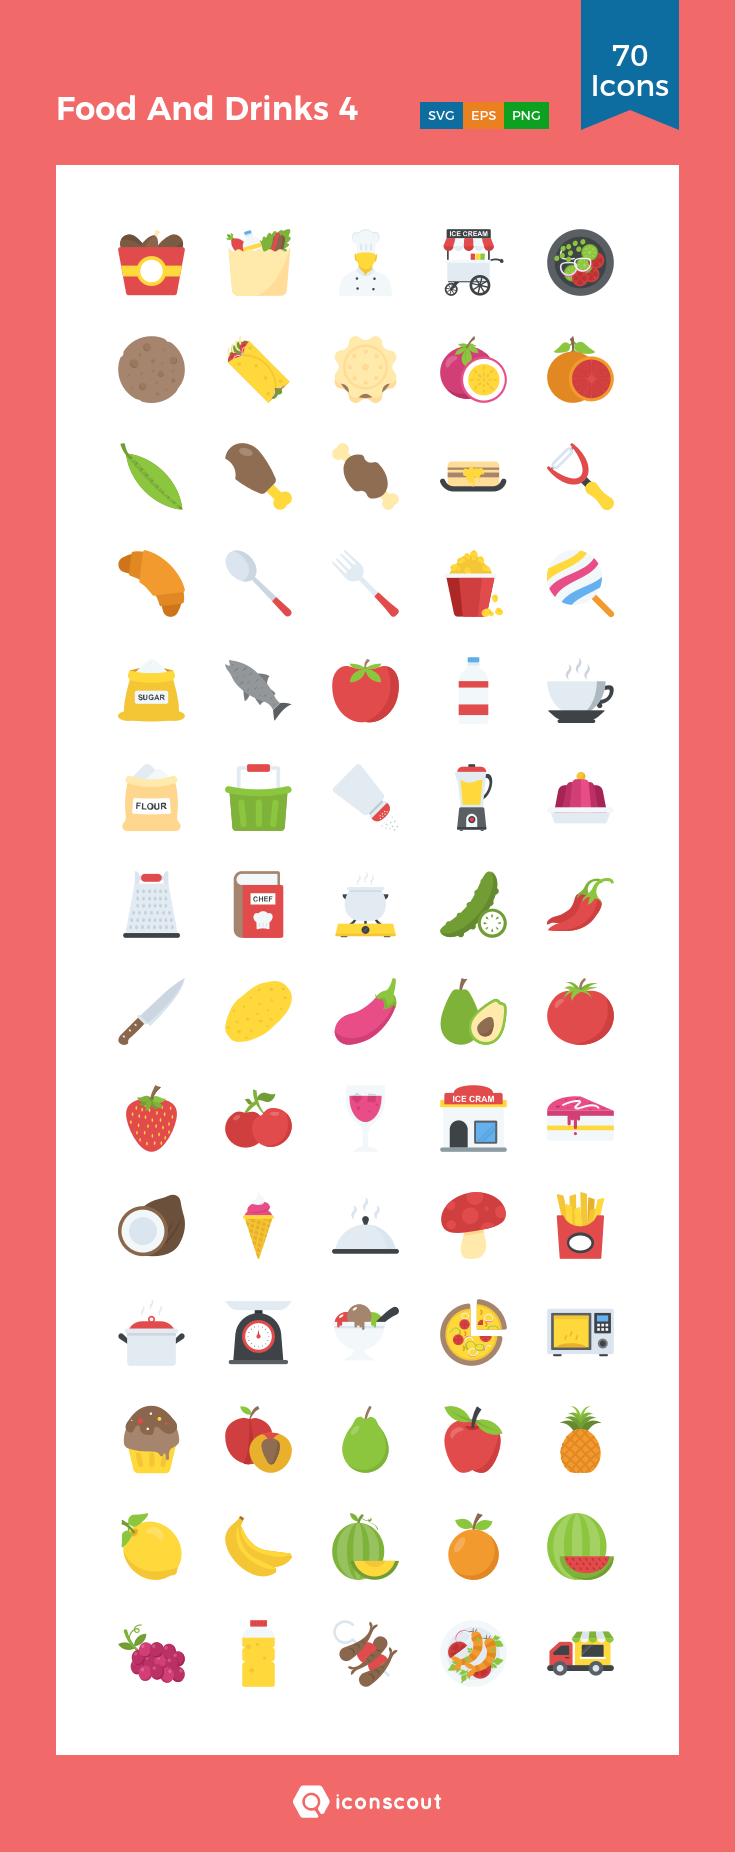 Download Food And Drinks 4 Icon Pack Available In Svg Png Eps Ai Icon Fonts Icon Pack Icon Food Icons